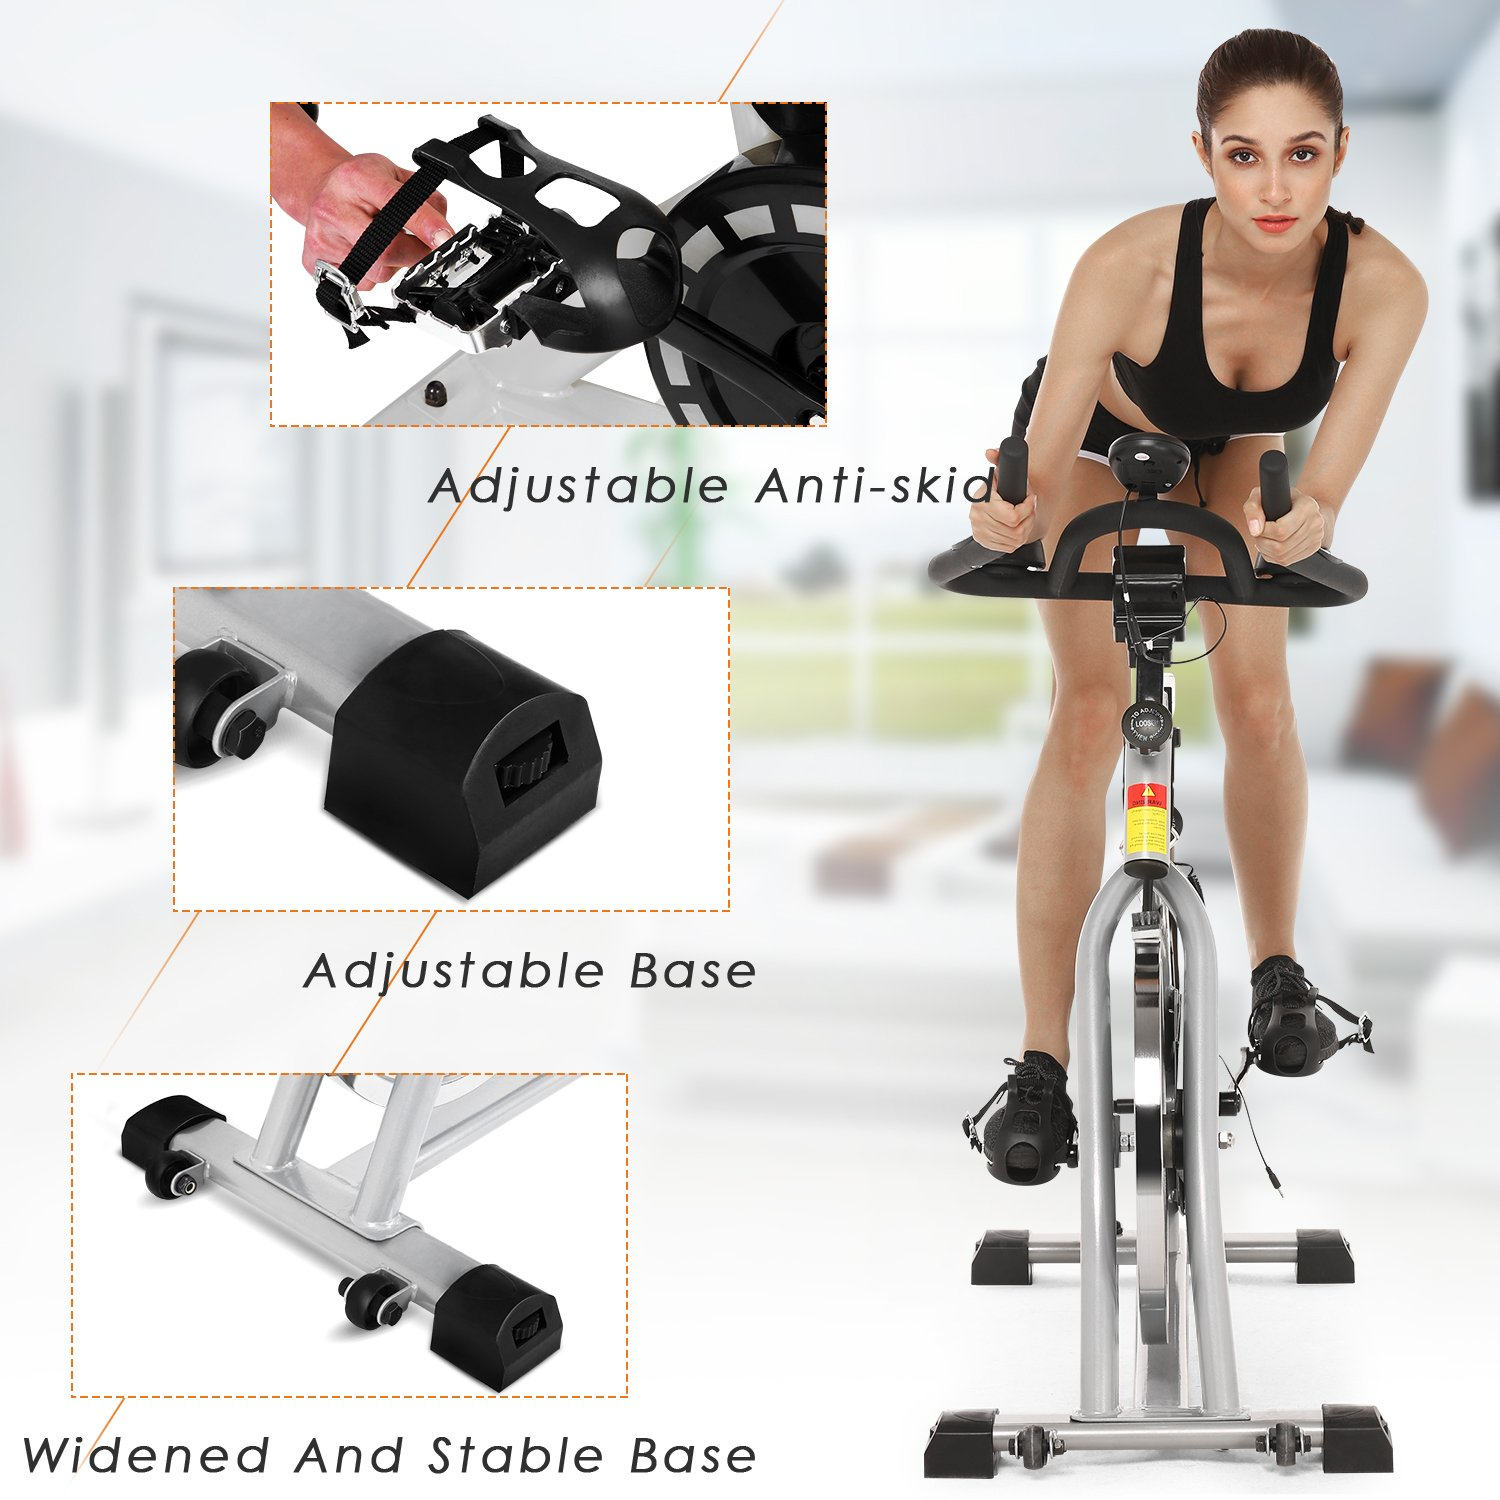 ANCHEER Stationary Bike, 40 LBS Flywheel Belt Drive Indoor Cycling Exercise Bike with Pulse, Elbow Tray (Model: ANCHEER-A5001) (Sliver) by ANCHEER (Image #8)